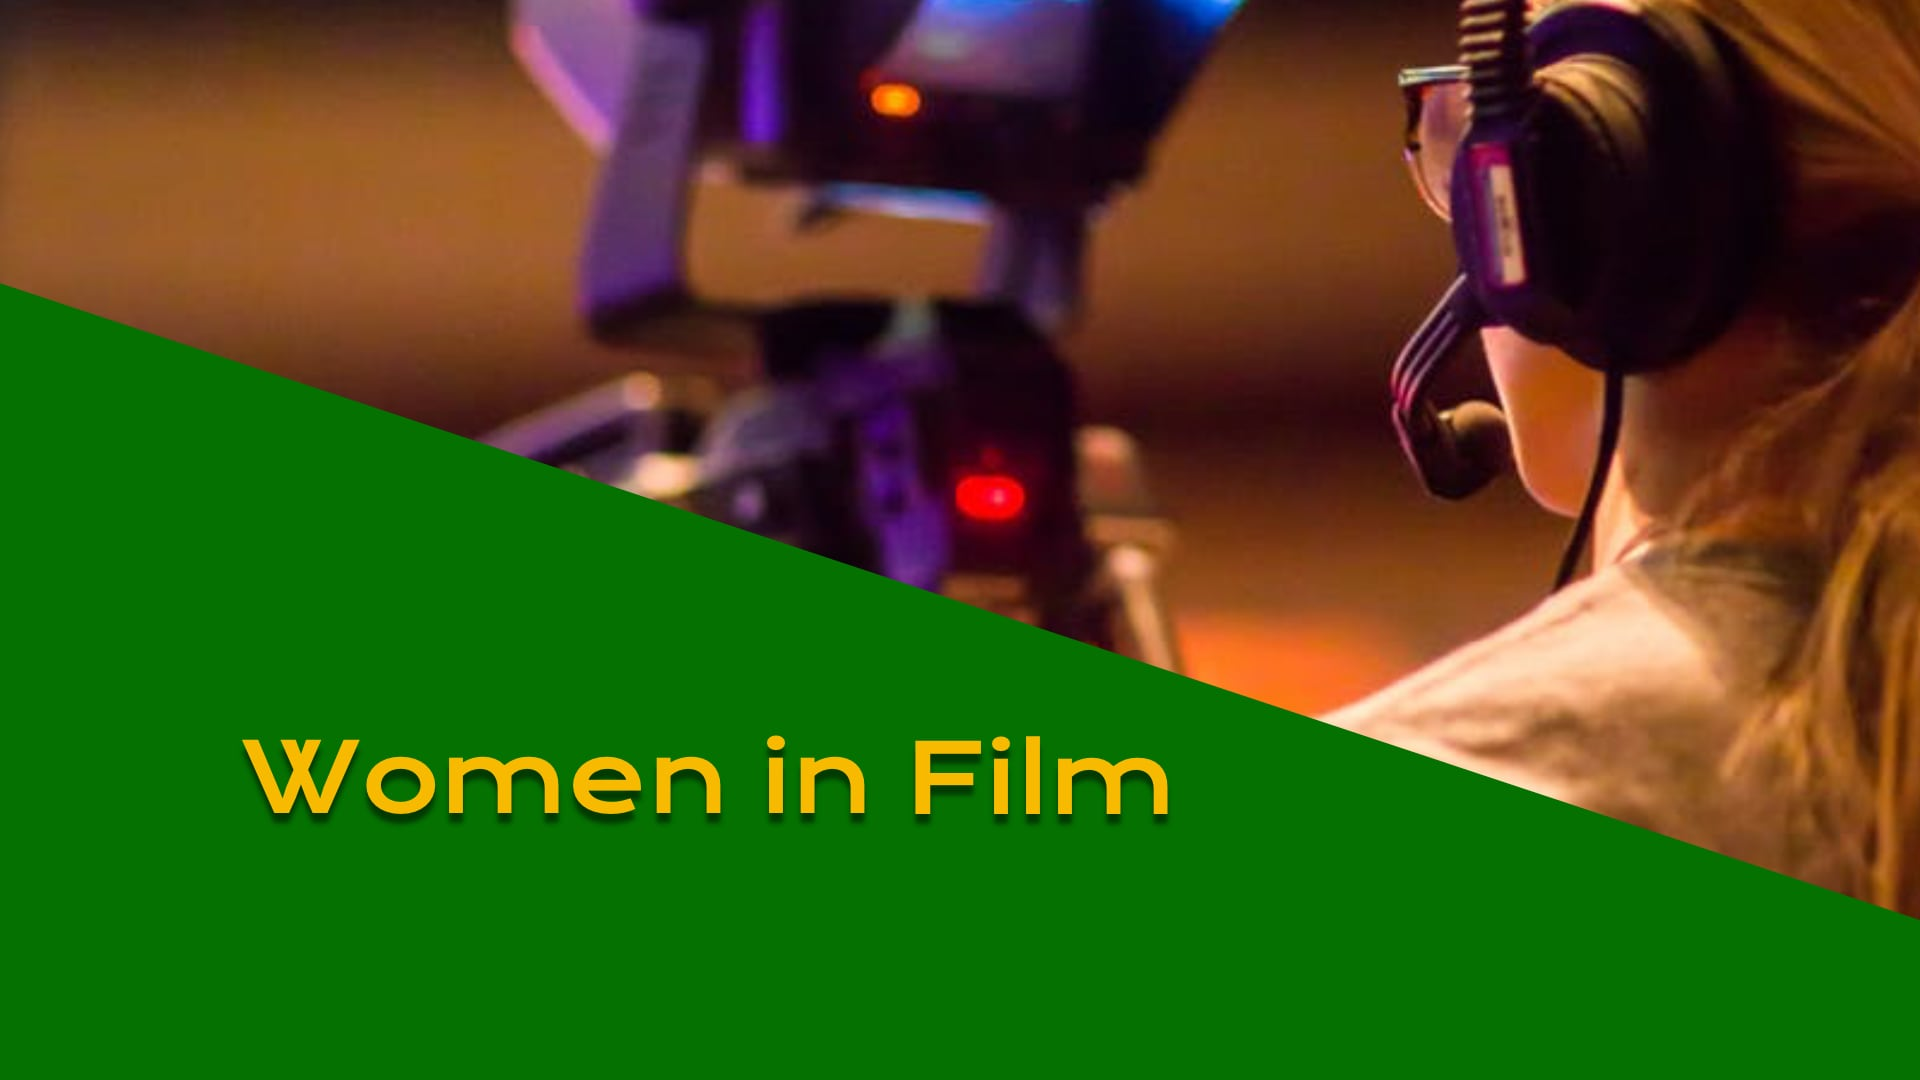 Carrie Sheldon and Mary Jo Devenny stop by to discuss Women in Film